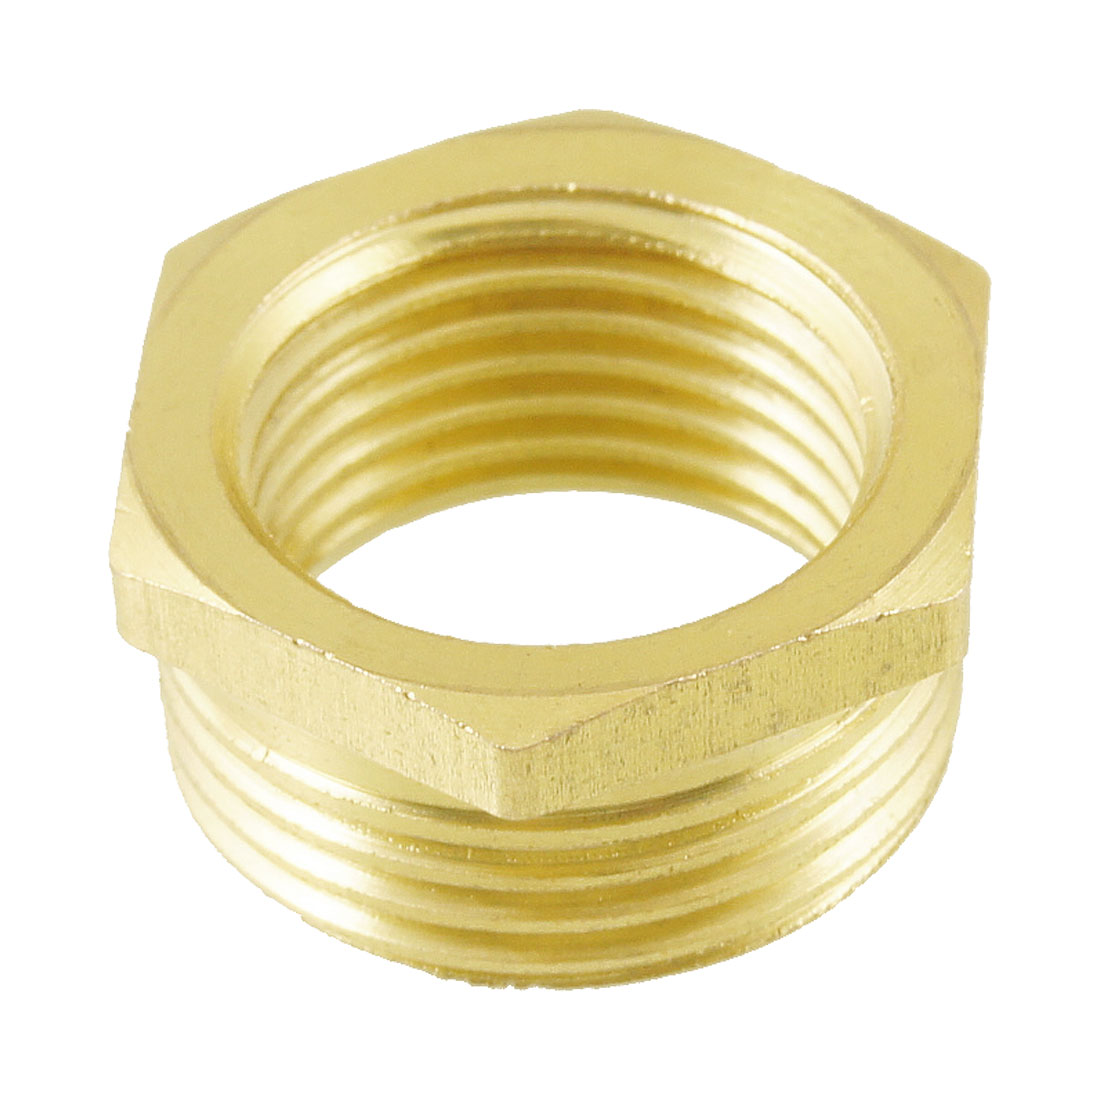 "3/4"" PT Male to 1/2"" PT Female Hex Thread Bushing Piping Connector Adapter"